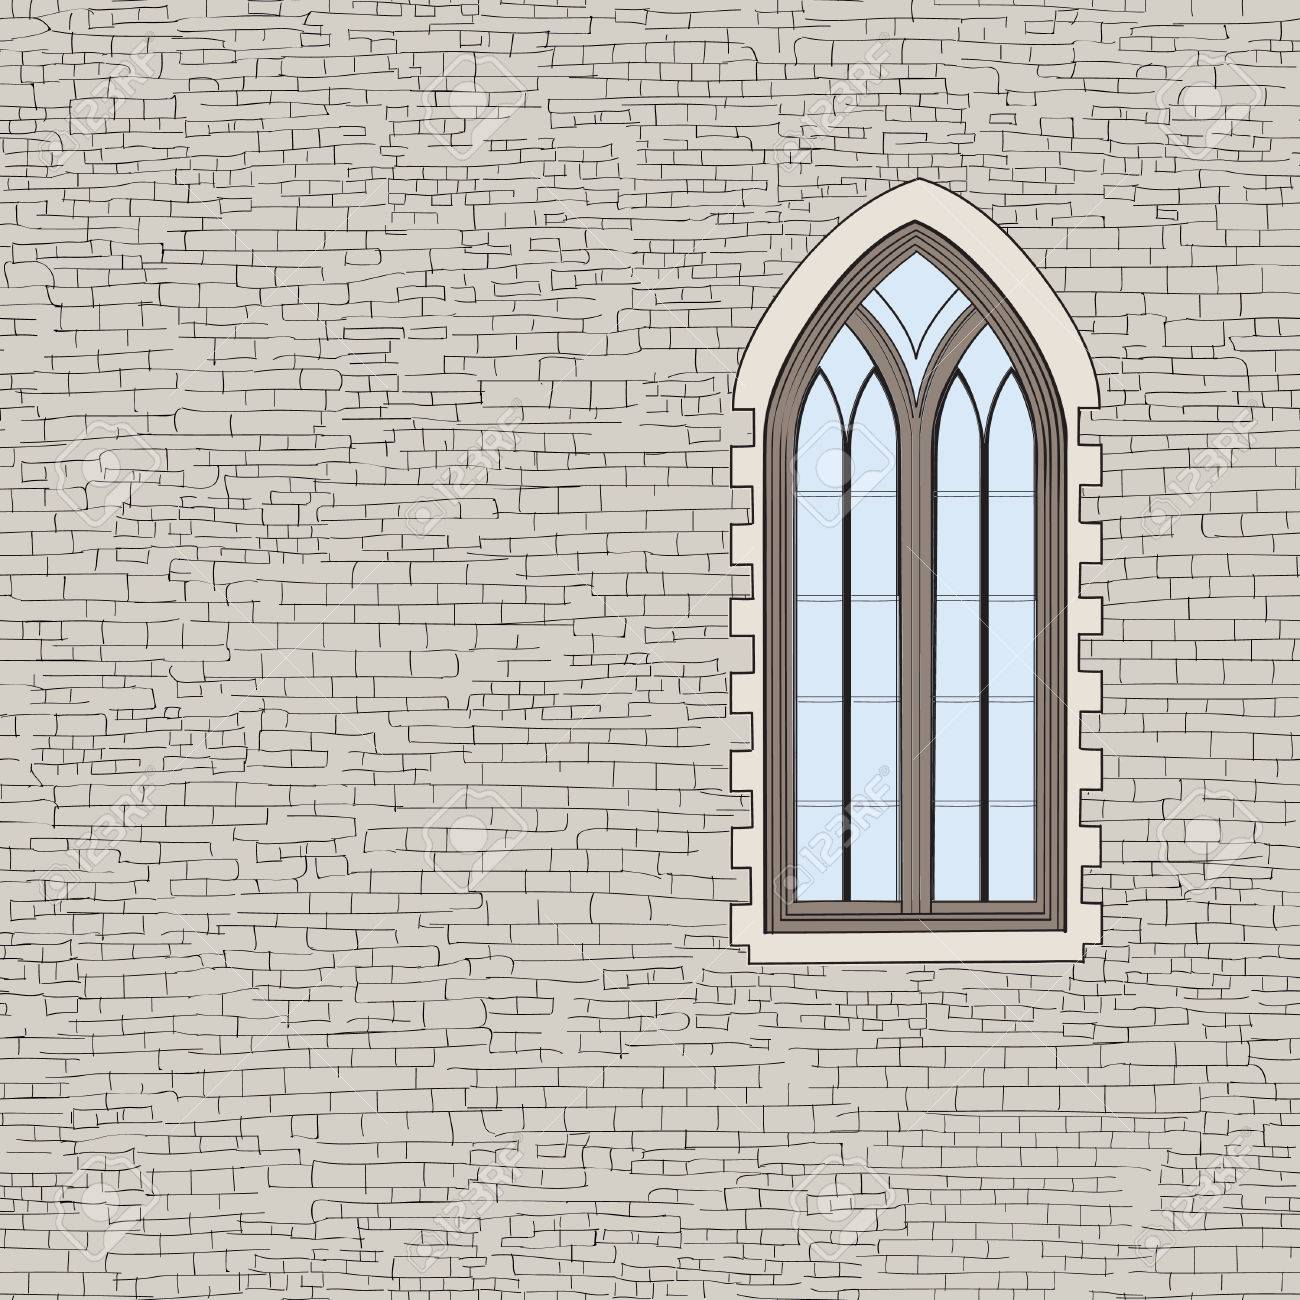 Ancient Brick Wall Background With Gothic Window Shabby Sketch Pattern Architectural Building Facade